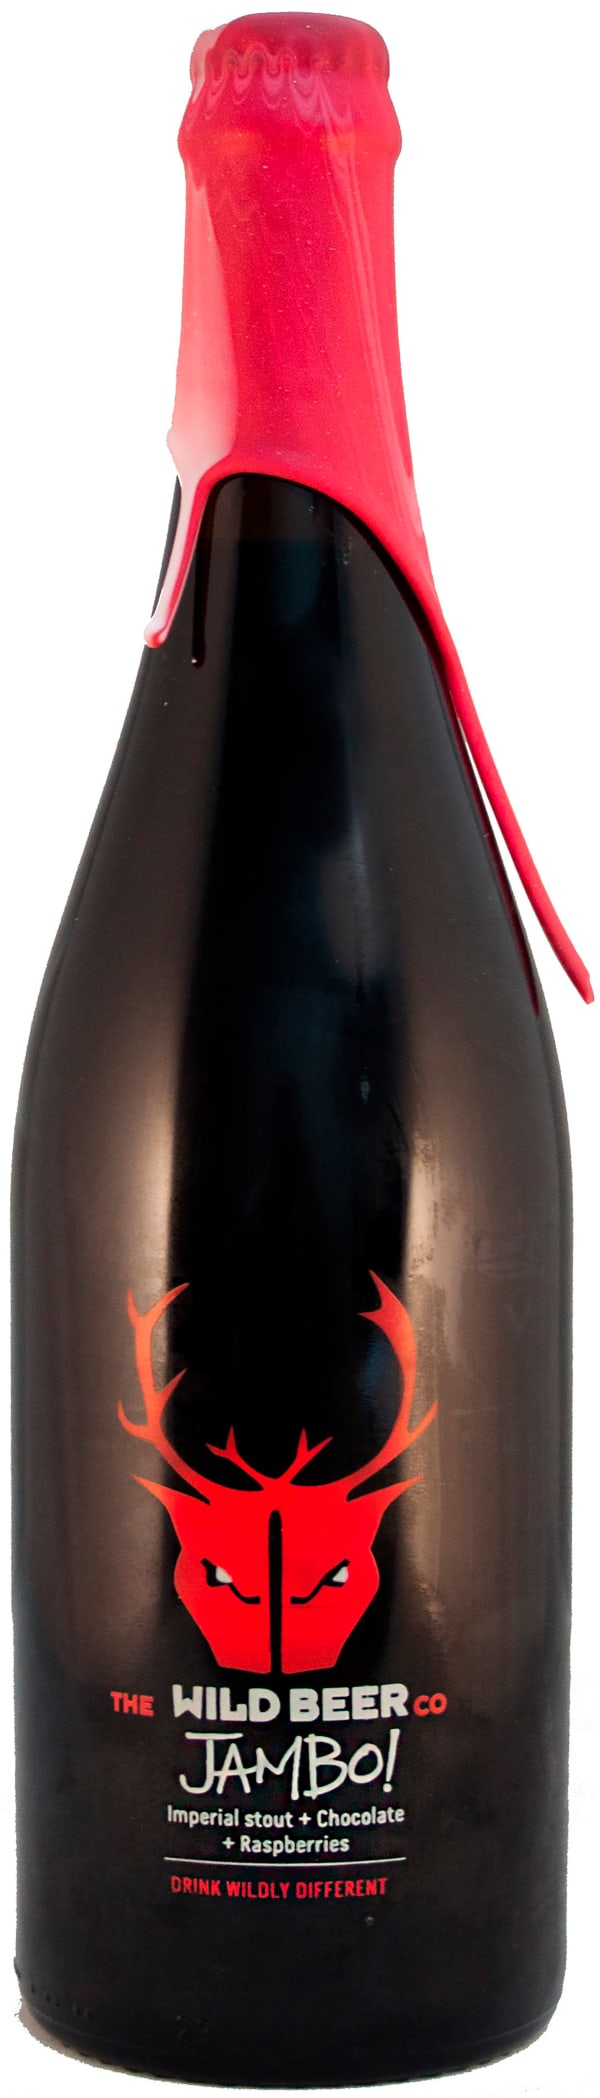 Wild Beer Jambo Imperial Stout